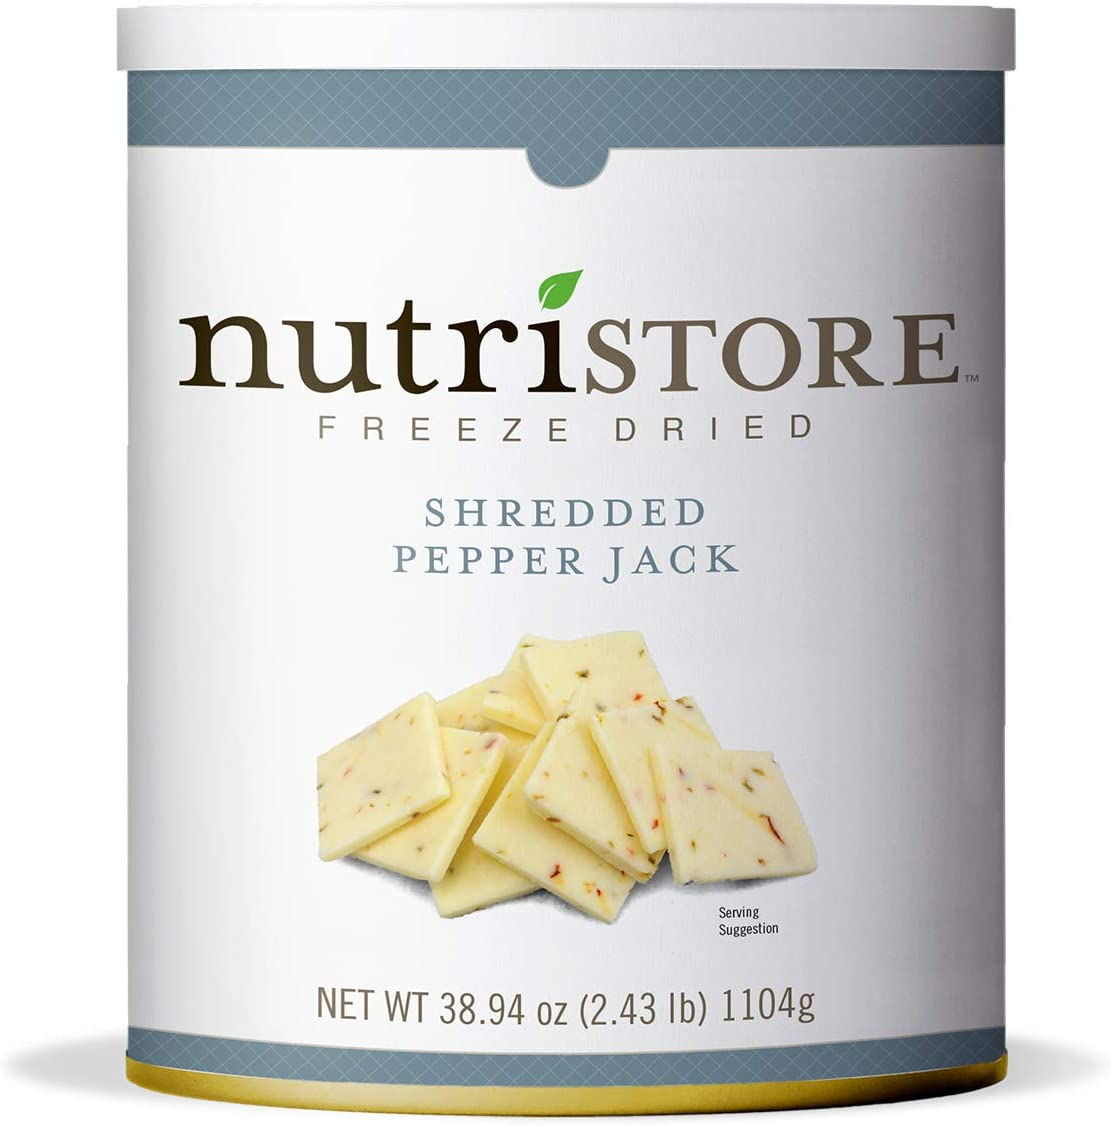 Nutristore Freeze-Dried Pepper Jack Cheese Shredded | Amazing Taste & Quality | Perfect for Snacking, & Backpacking/Camping Meals | Emergency Survival Food Storage | 25 Year Shelf-Life